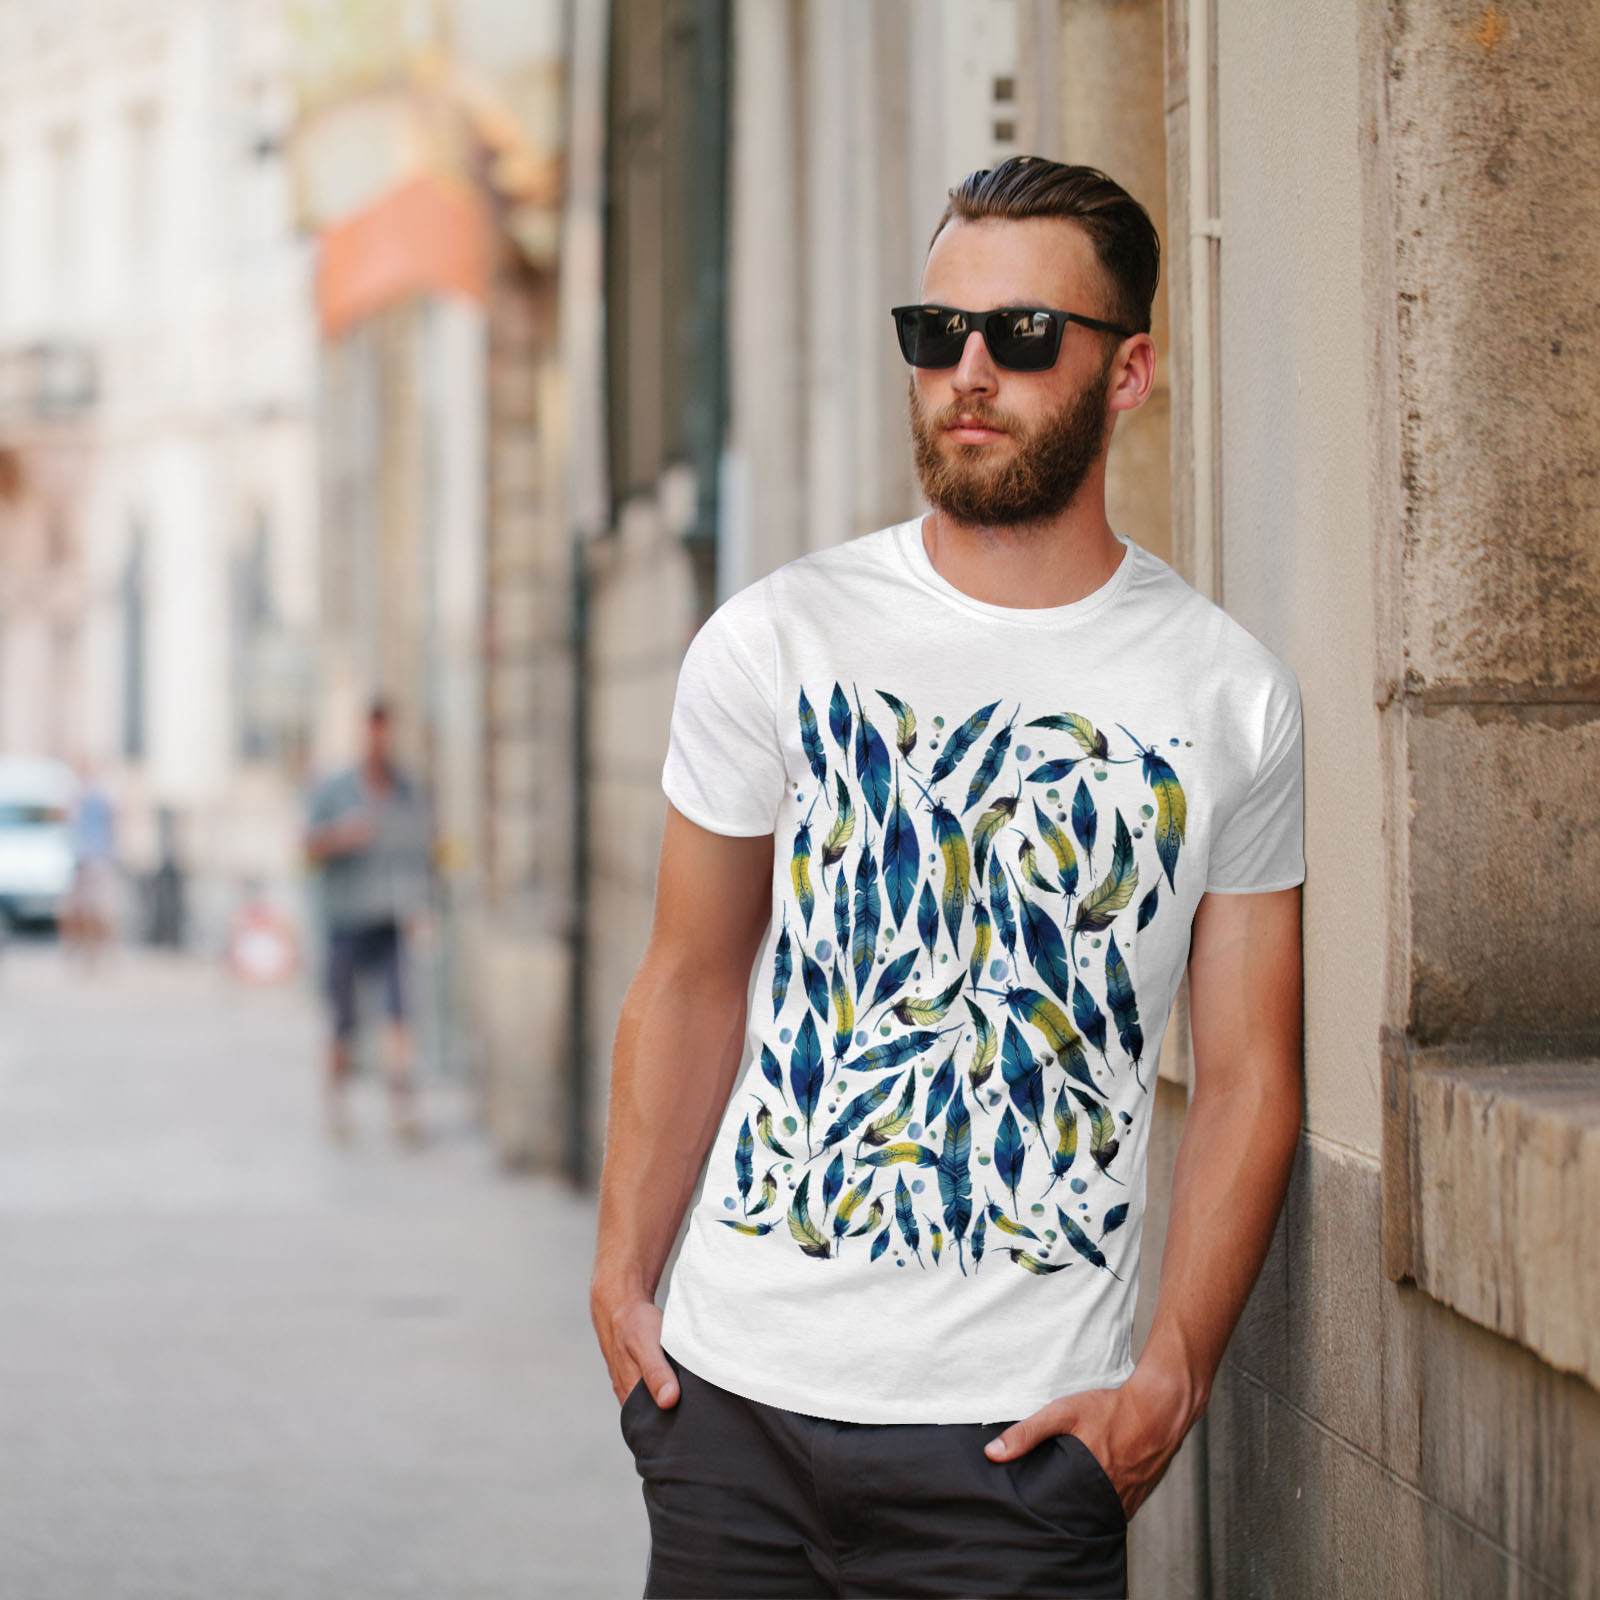 Wellcoda-fashion-Plumes-T-shirt-homme-Abstract-Design-graphique-imprime-Tee miniature 11